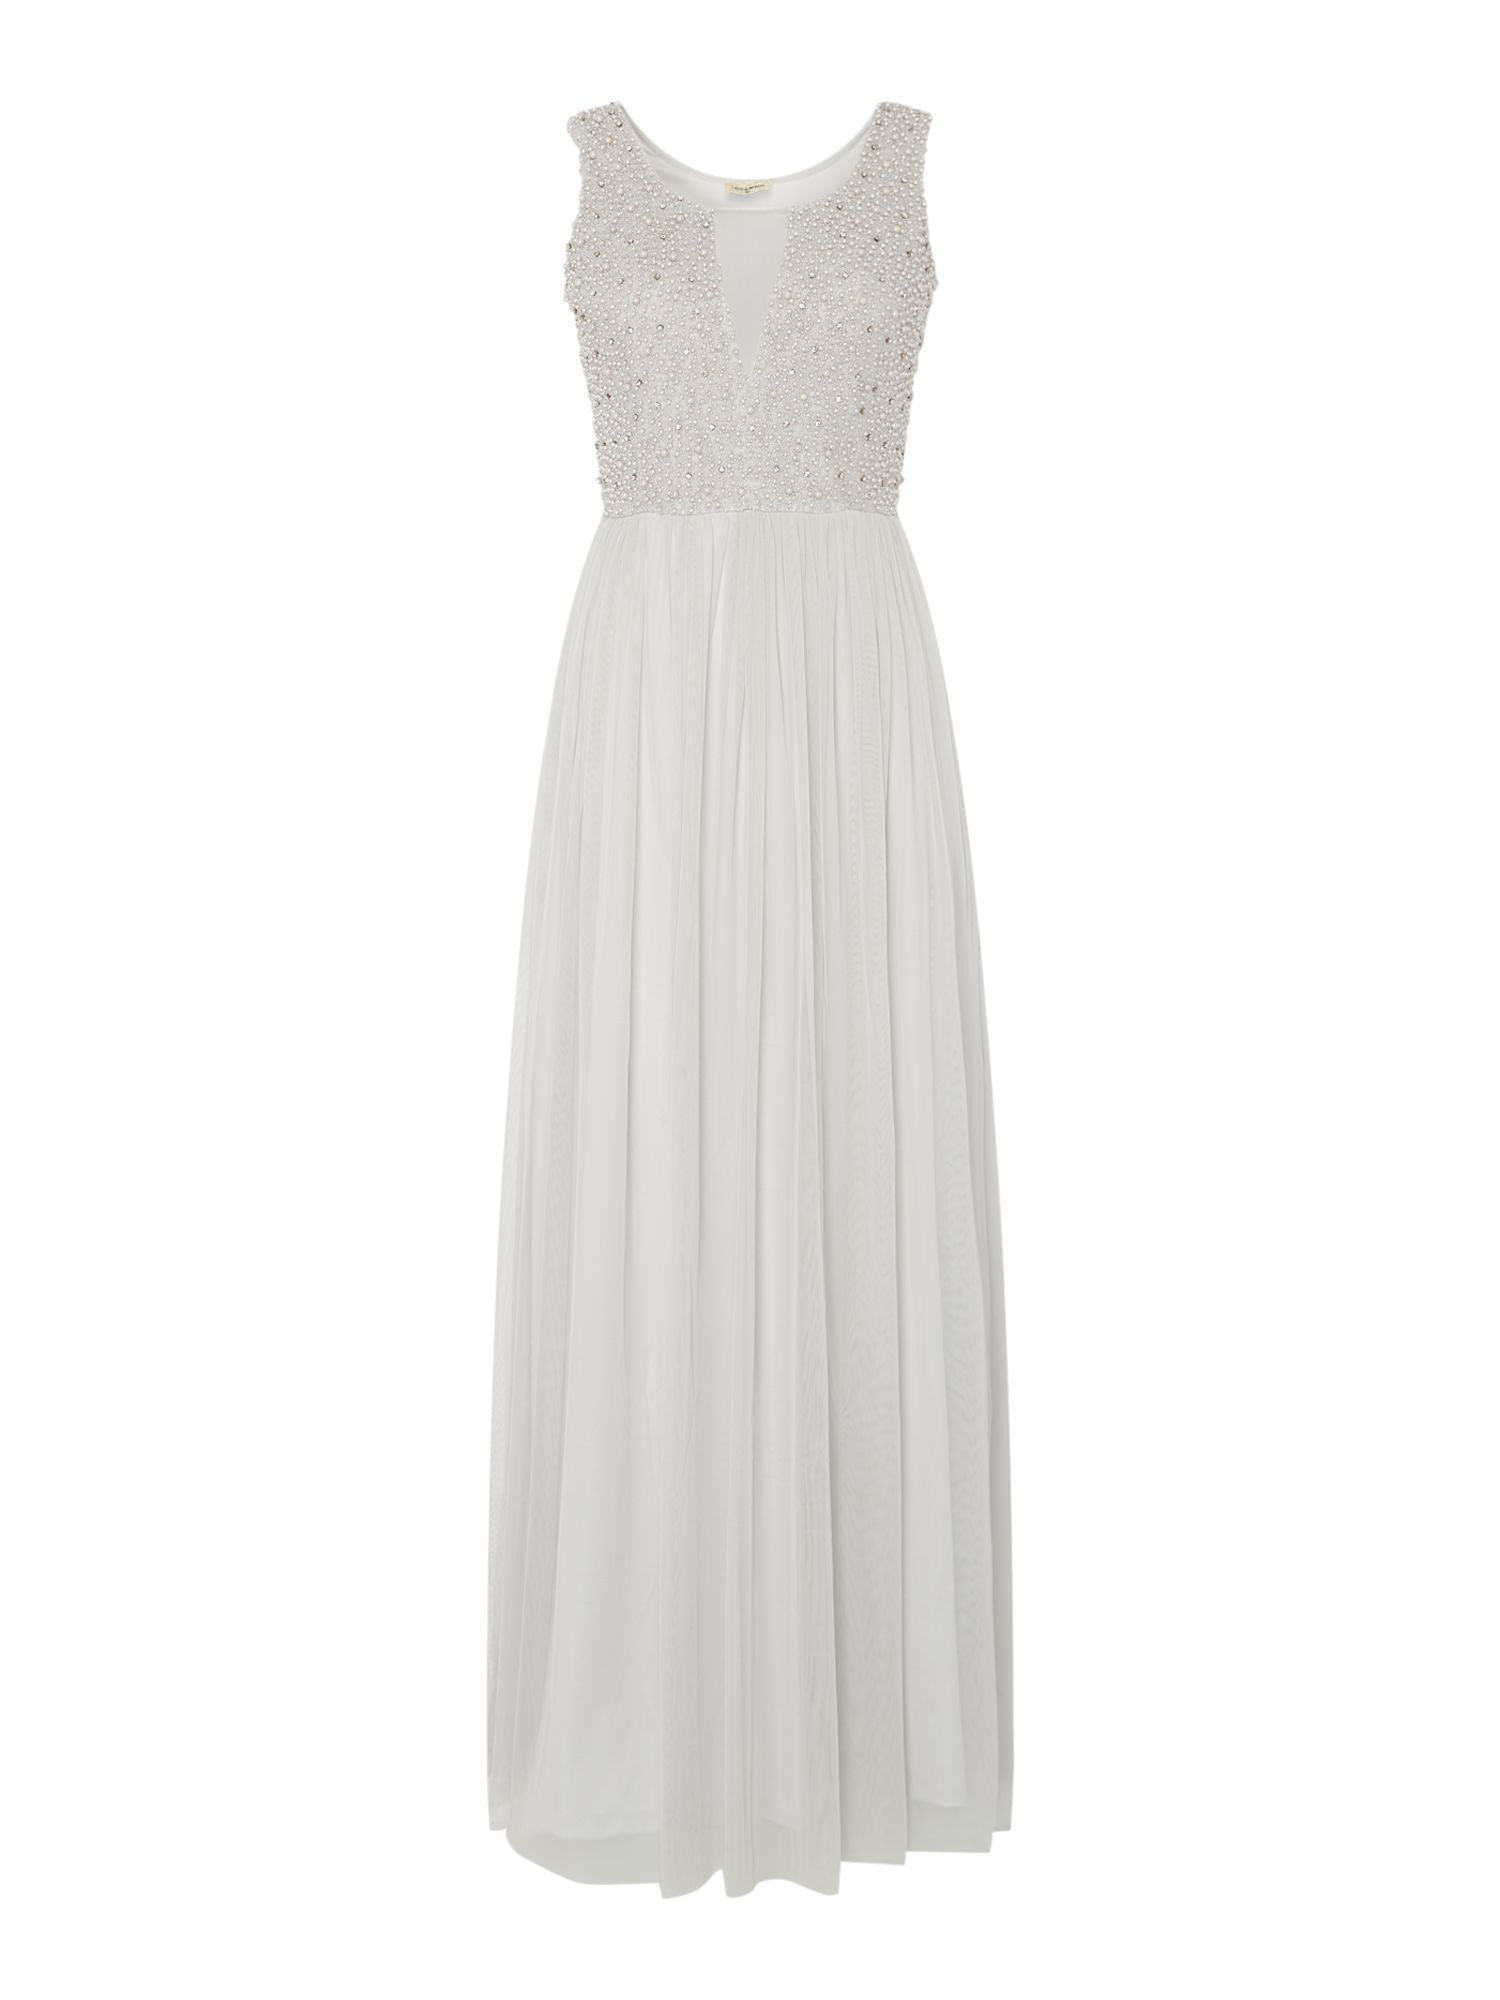 Lace and Beads V neck beaded top maxi dress, Grey